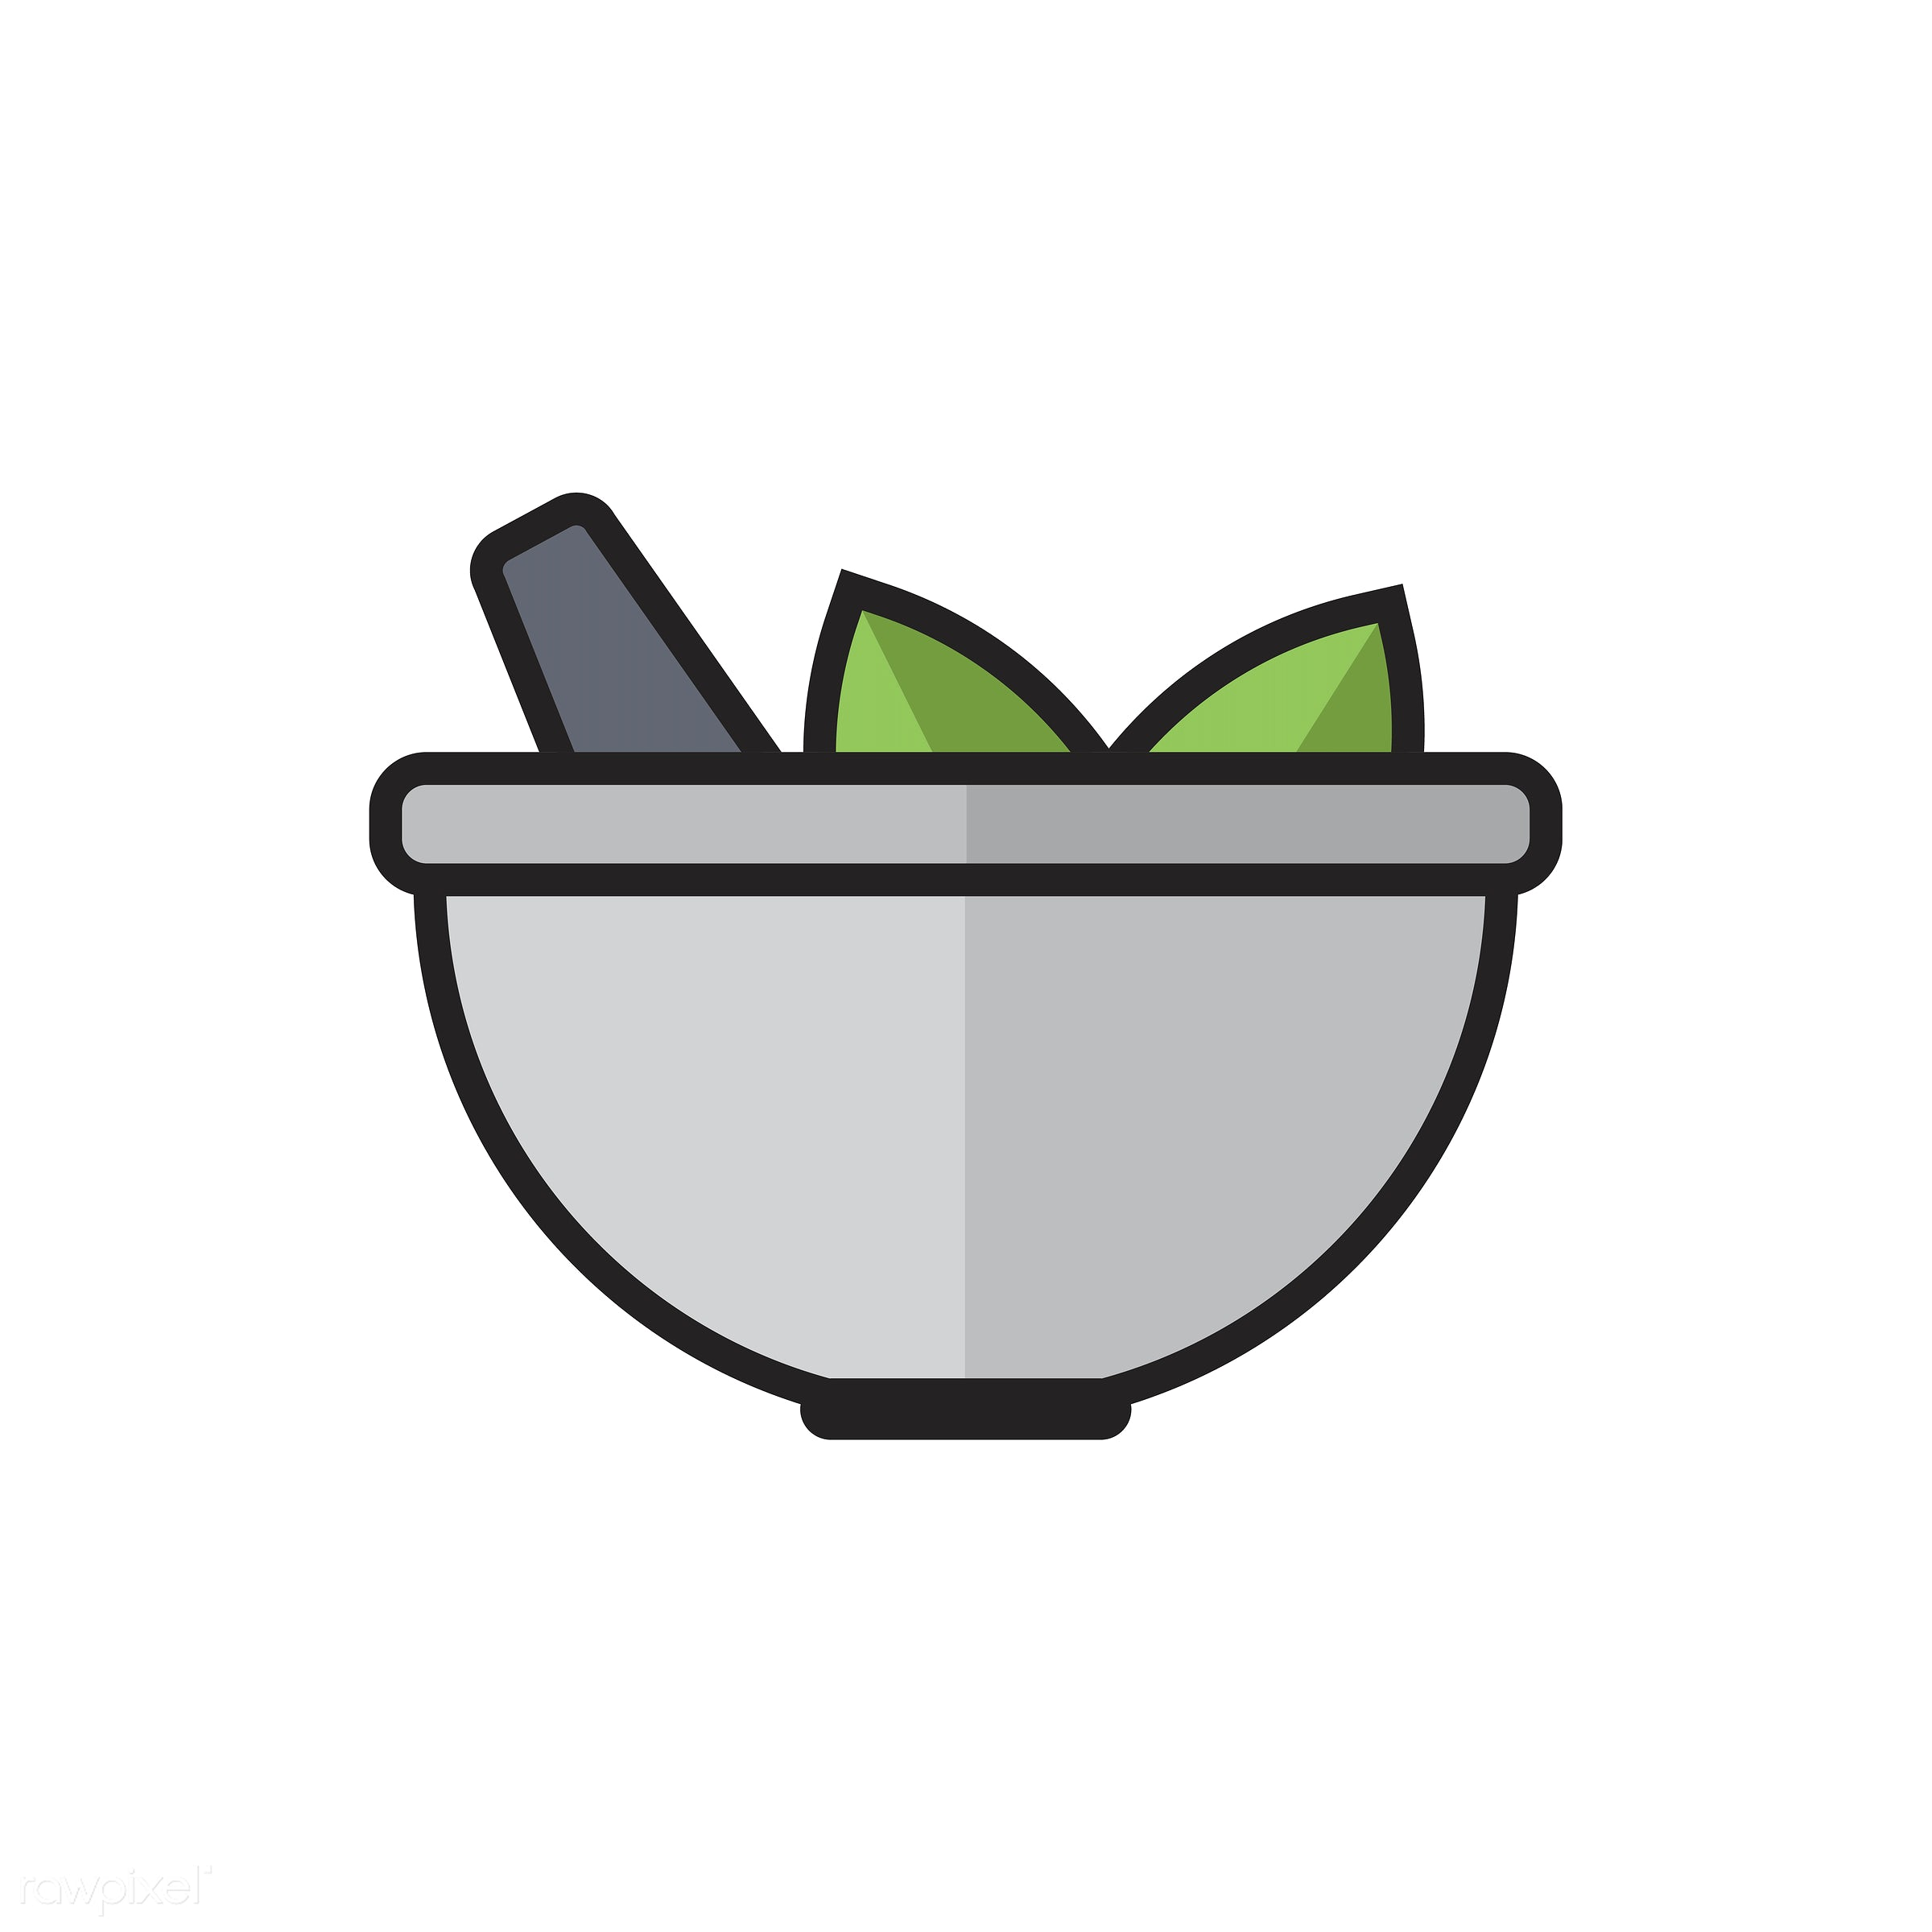 Illustration of mortar and pestle - biology, chemistry, class, design, education, equipment, experiments, graphic, grind,...